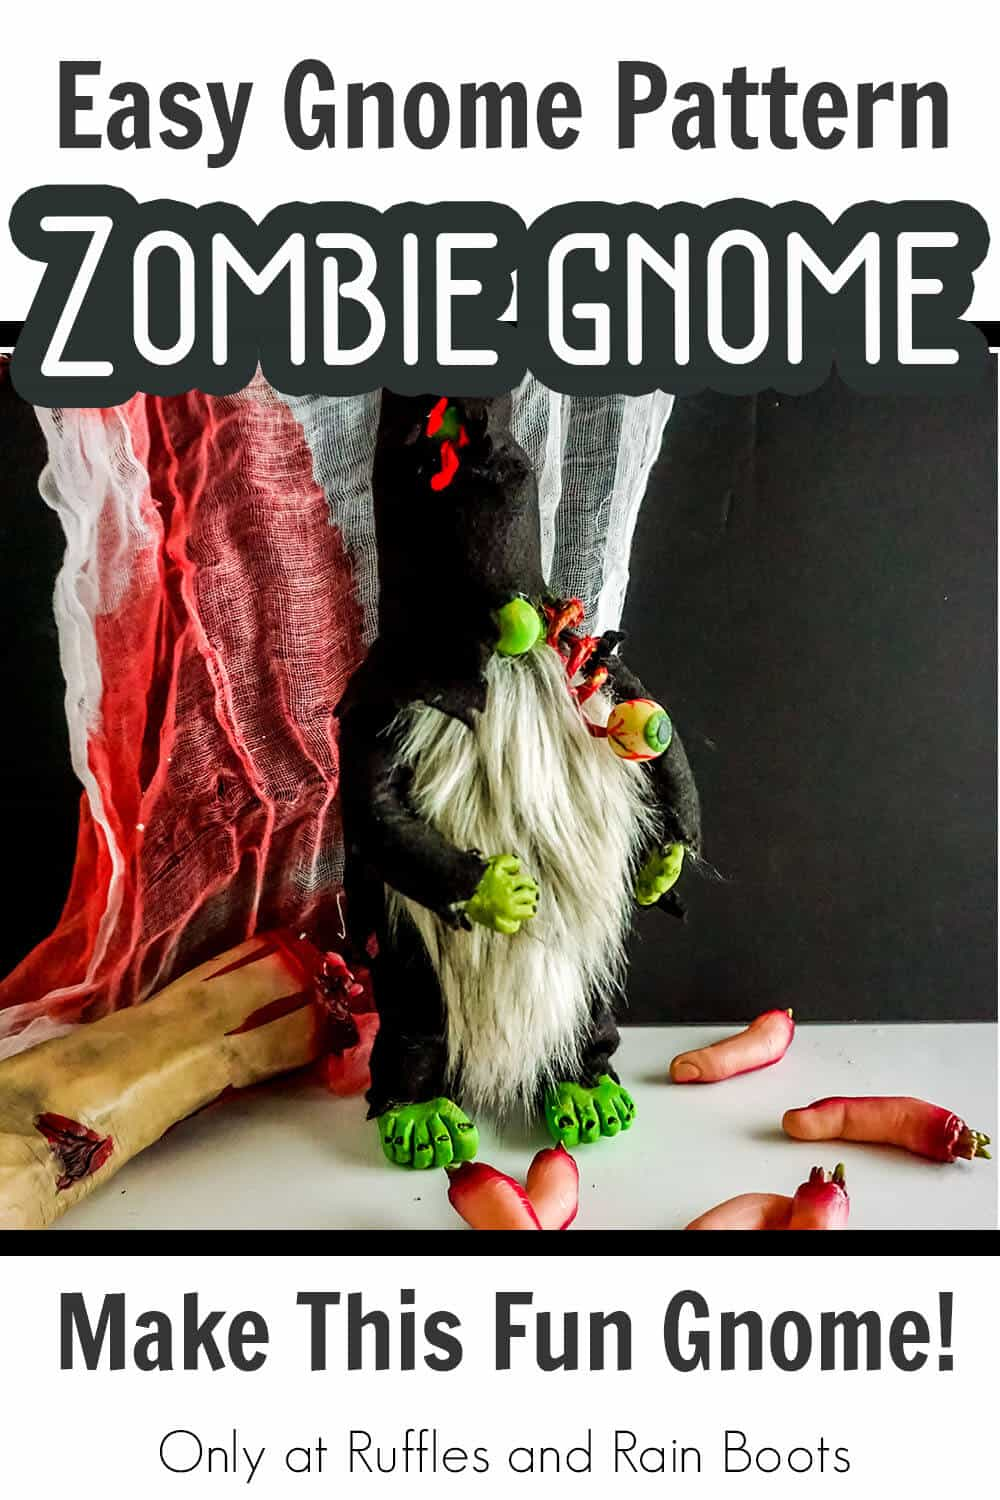 easy zombie gnome no-sew pattern for gnomes with text which read easy gnome pattern zombie gnome make this fun gnome!